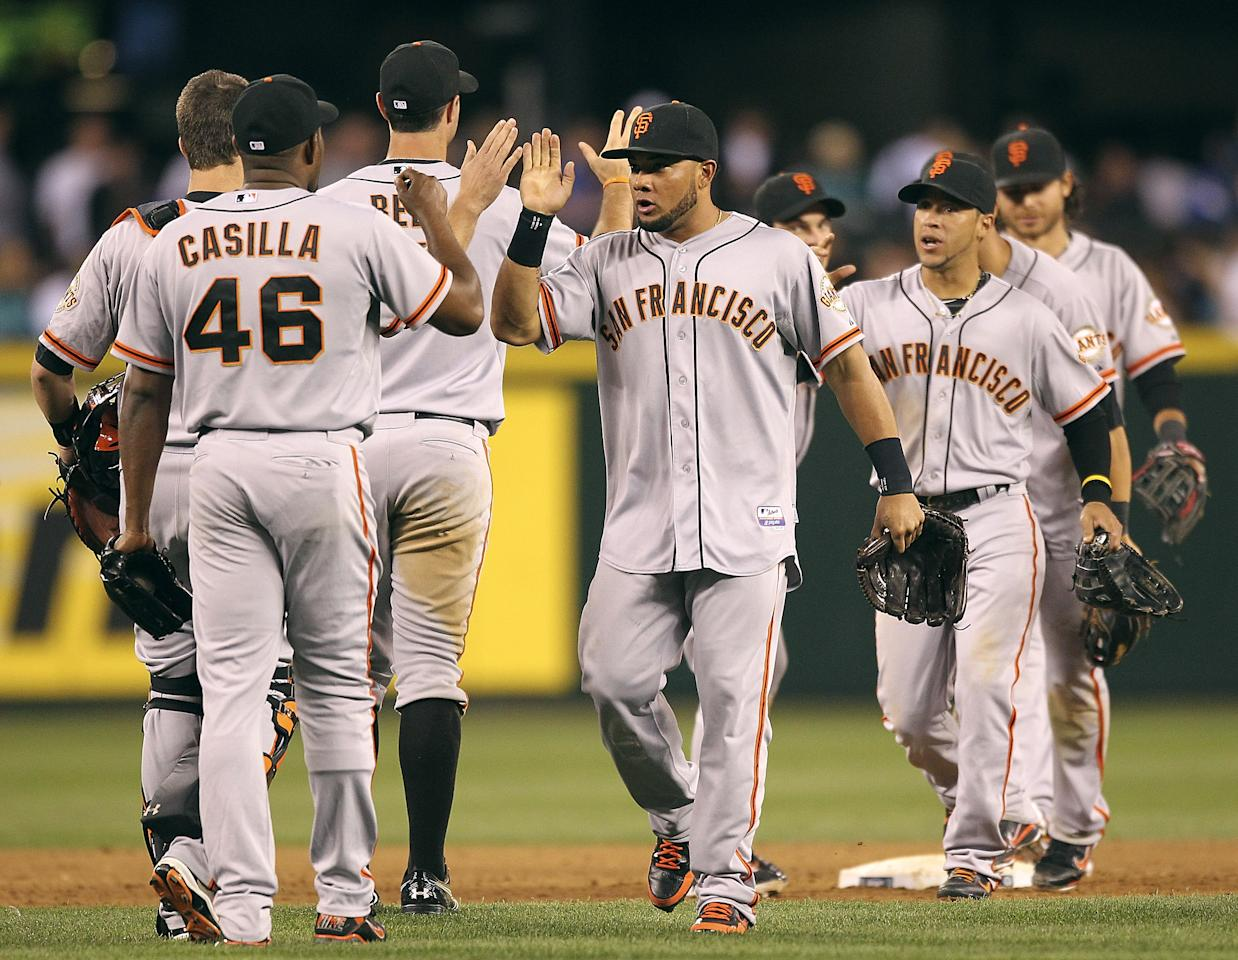 SEATTLE, WA - JUNE 15:  Members of the San Francisco Giants celebrate after defeating the Seattle Mariners 4-2 at Safeco Field on June 15, 2012 in Seattle, Washington.(Photo by Otto Greule Jr/Getty Images)